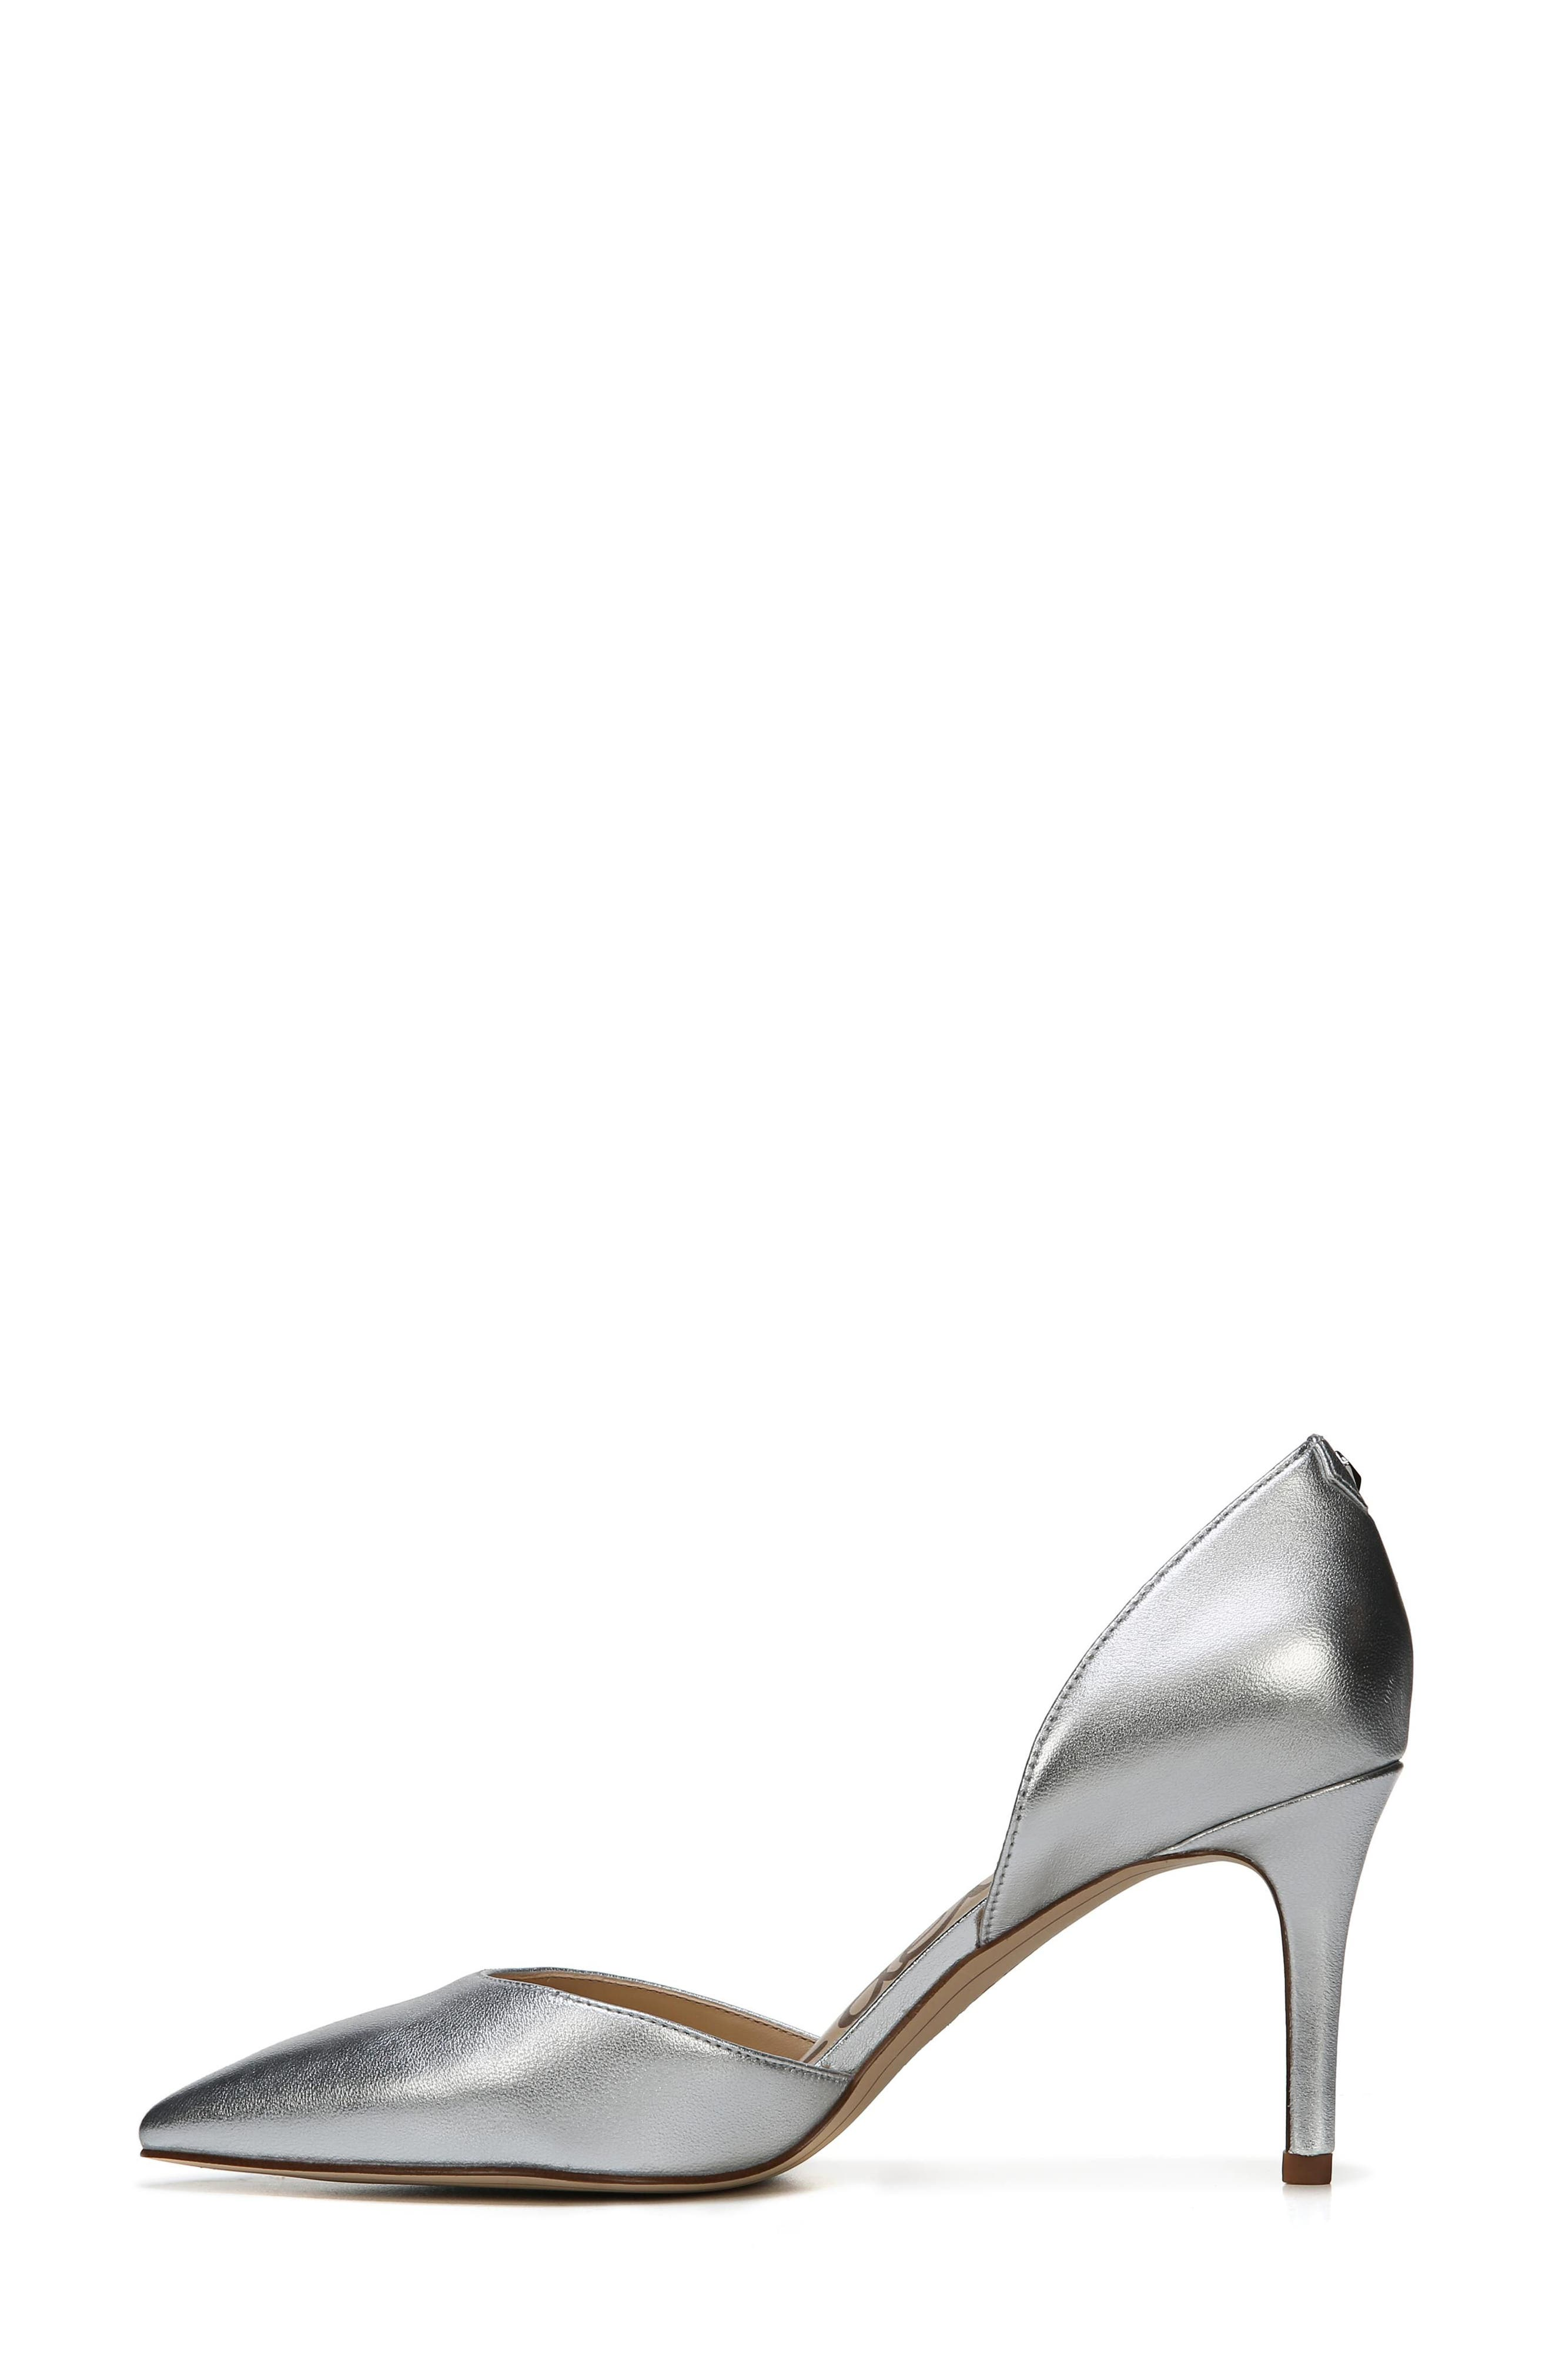 'Telsa' d'Orsay Pointy Toe Pump,                             Alternate thumbnail 3, color,                             040